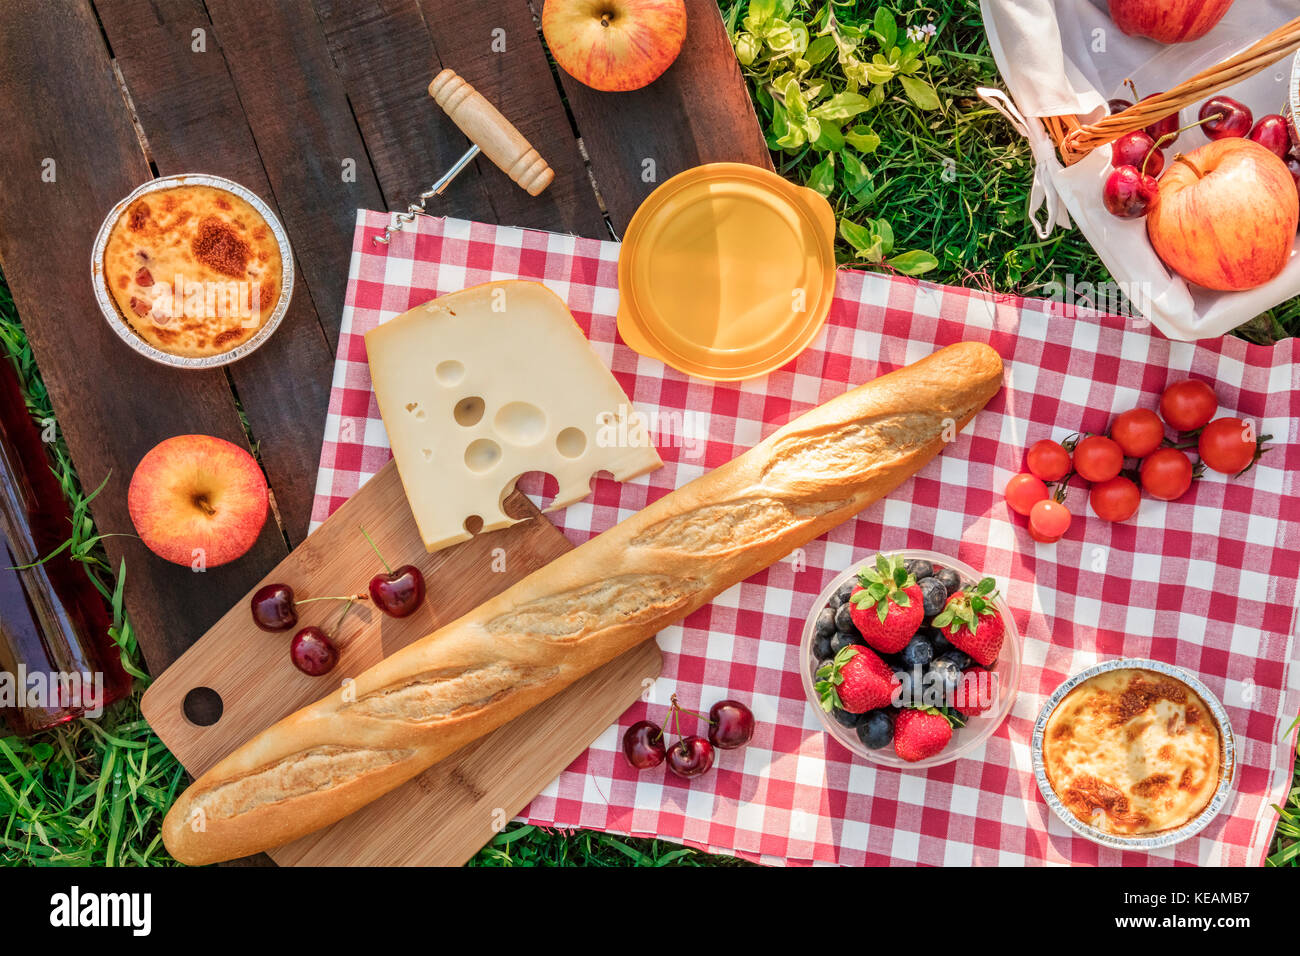 An overhead photo of a picnic with an apple, a bottle of rose wine, fresh cherries, a quiche, a corkscrew, and a - Stock Image